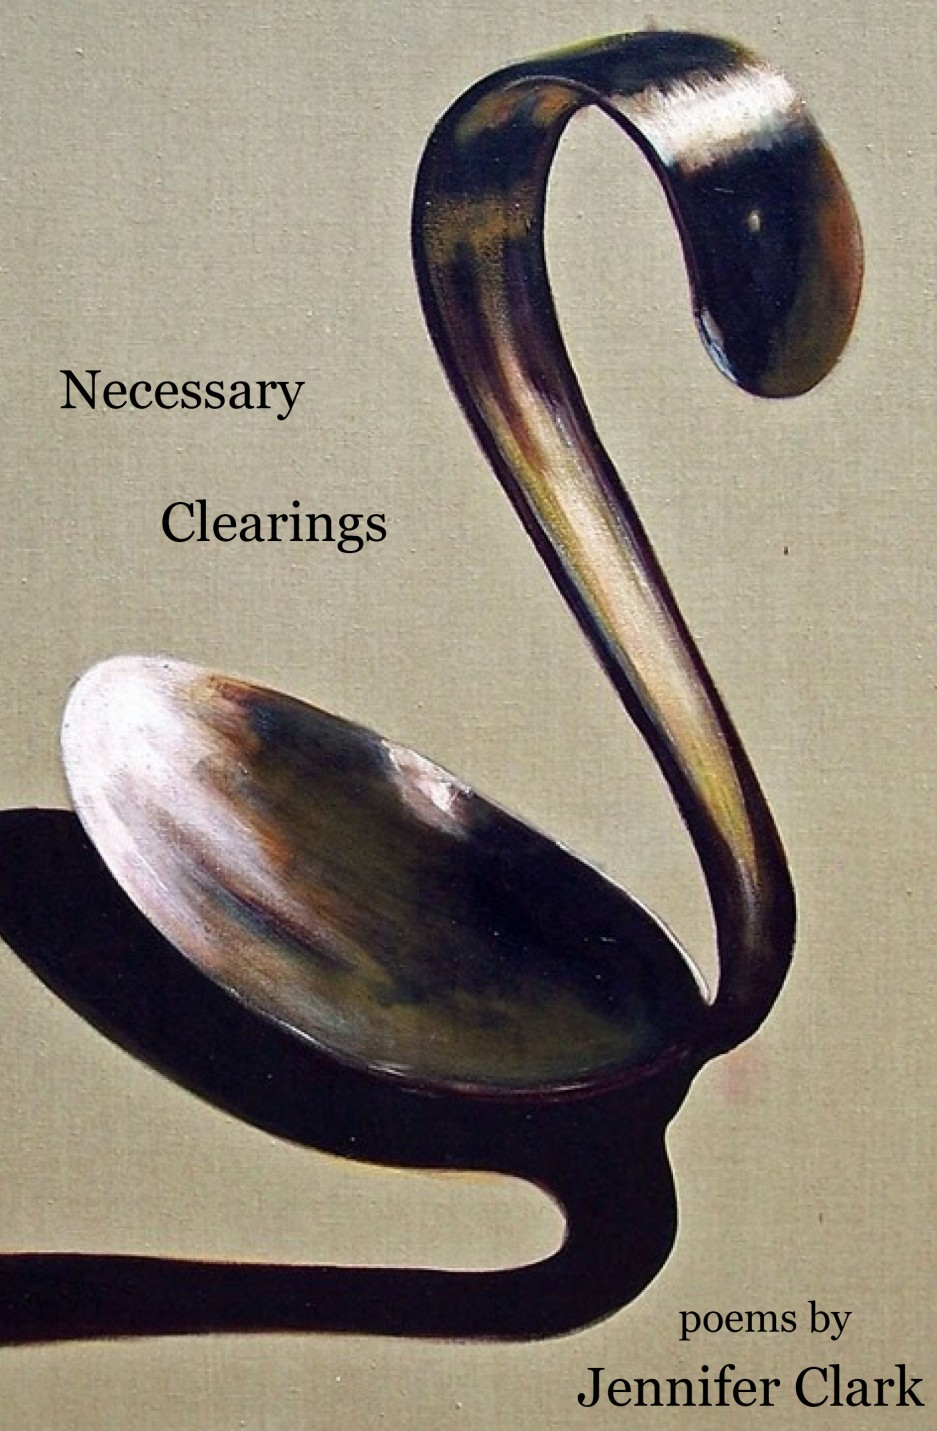 cropped-book-cover3.jpg